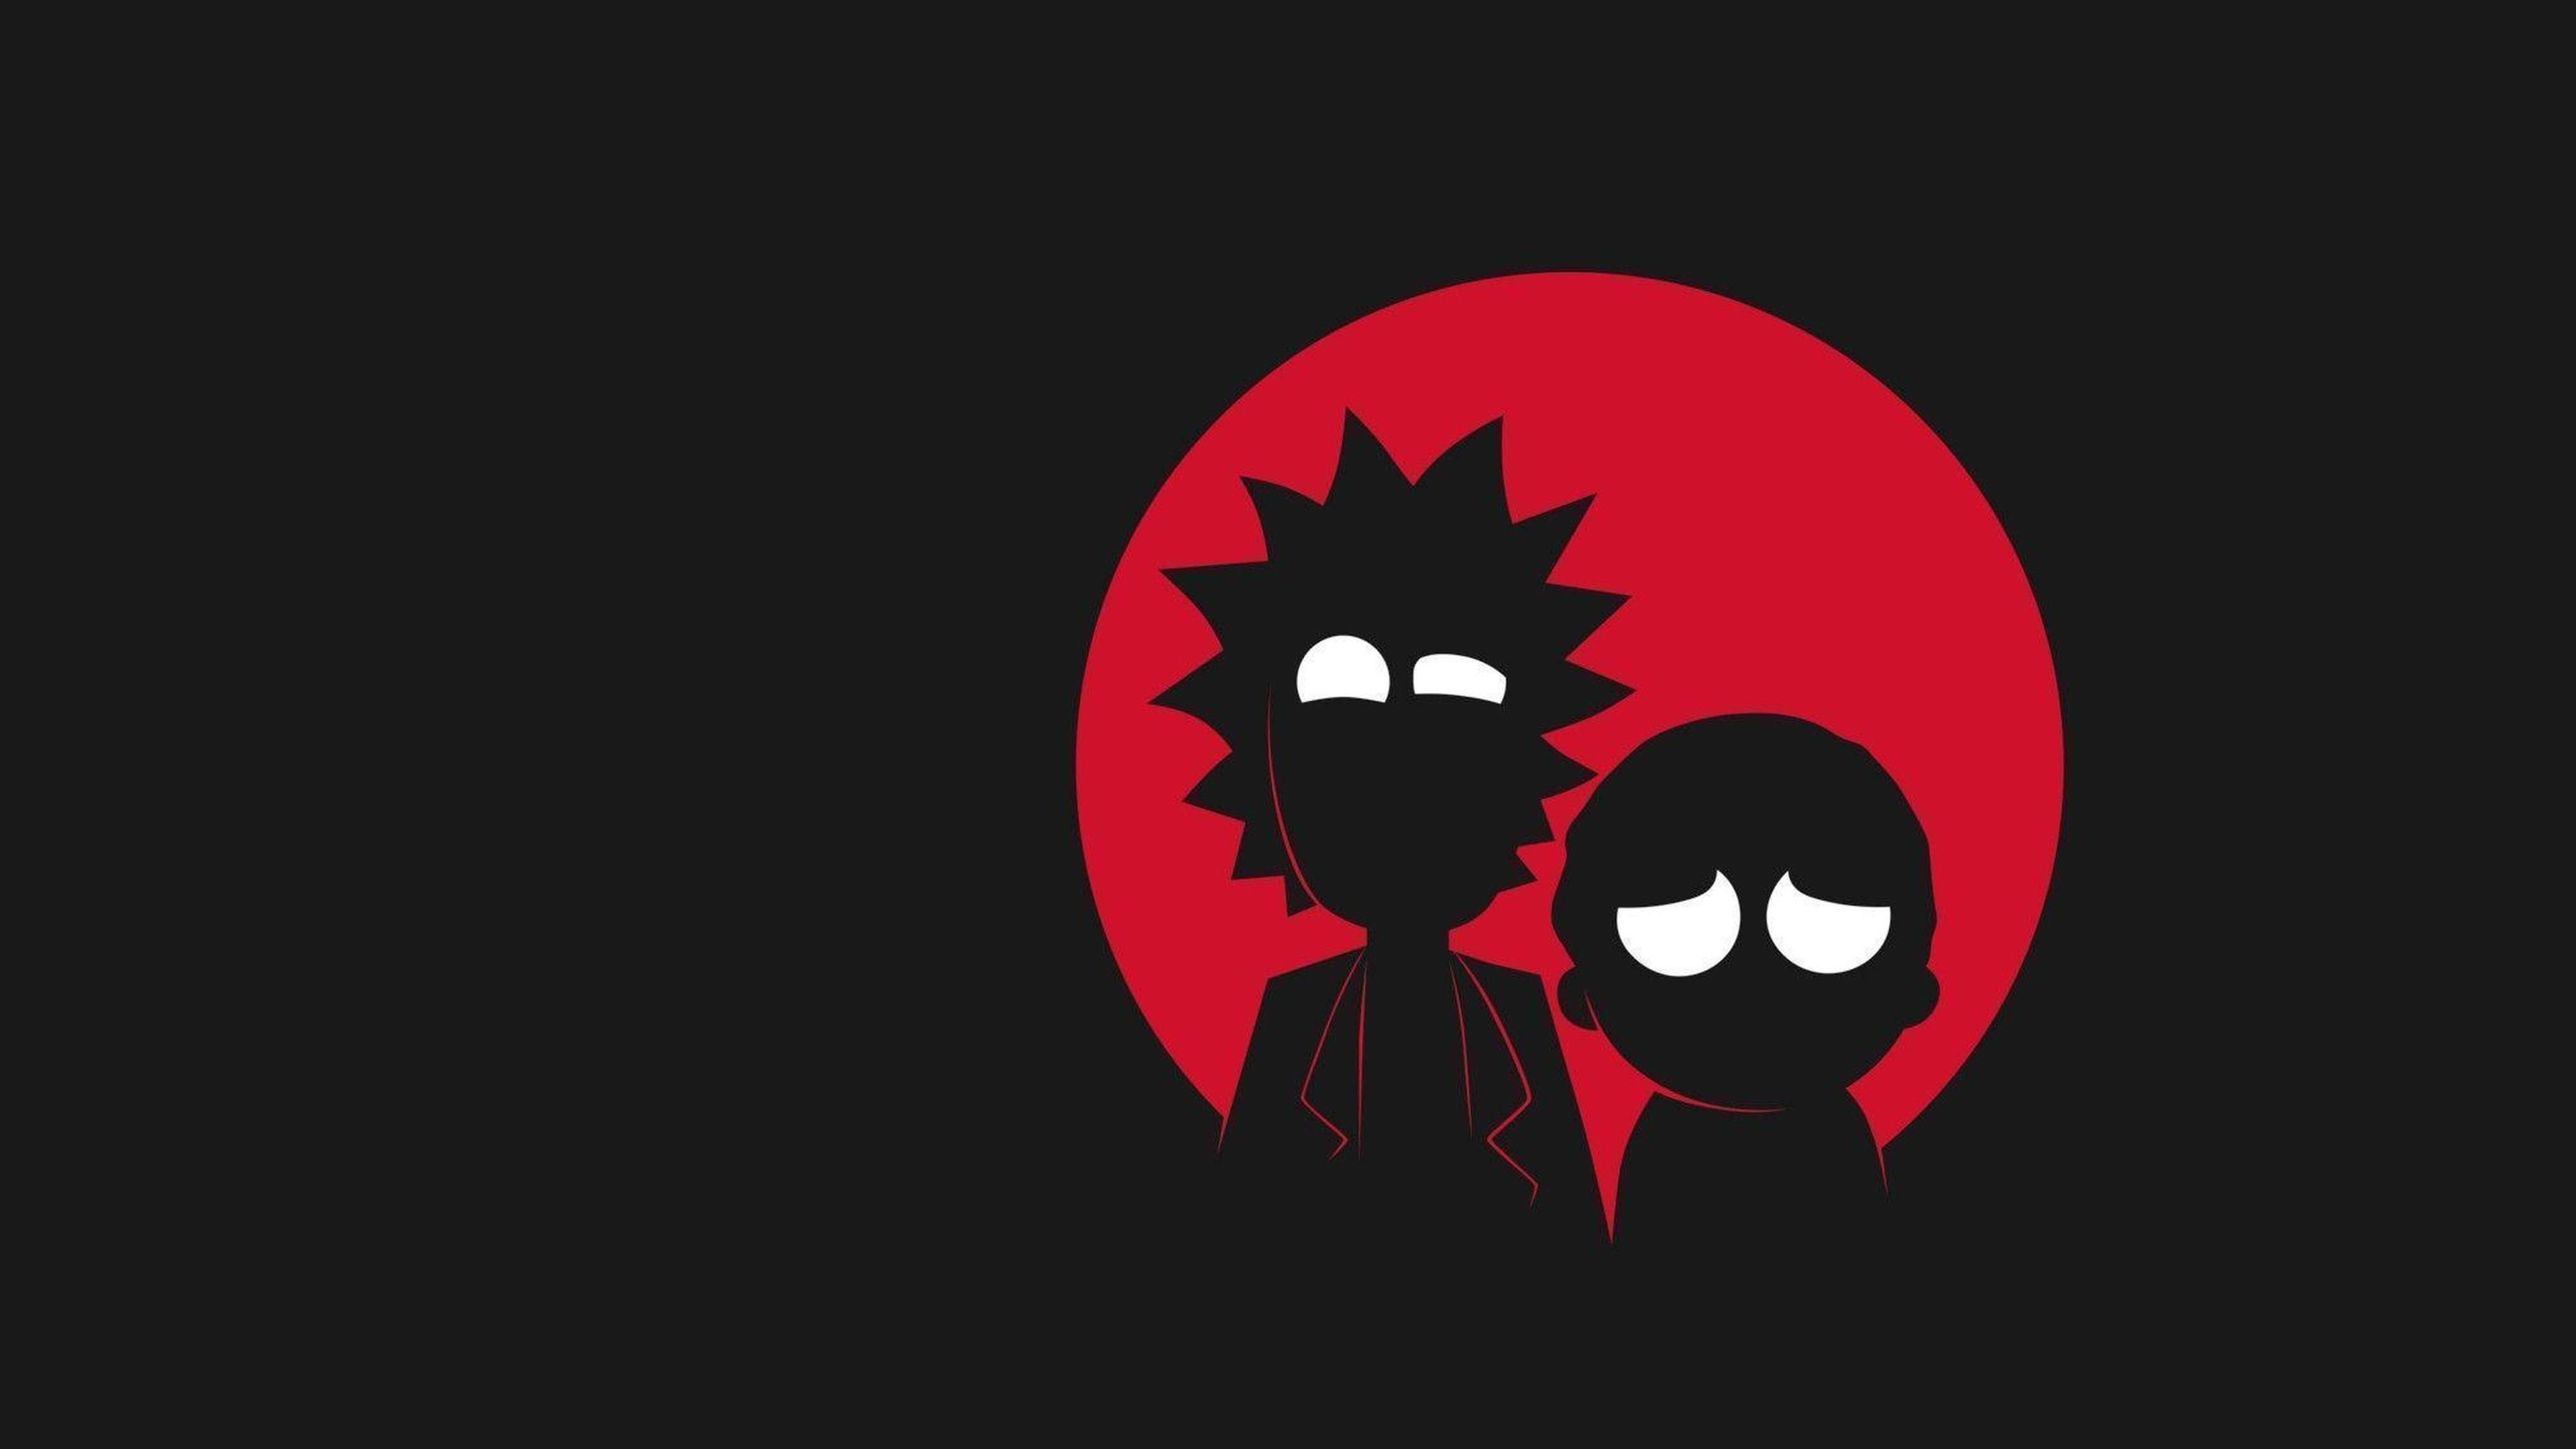 Rick And Morty 3840x2160 Rick And Morty Astronaut Wallpaper Rick And Morty Poster